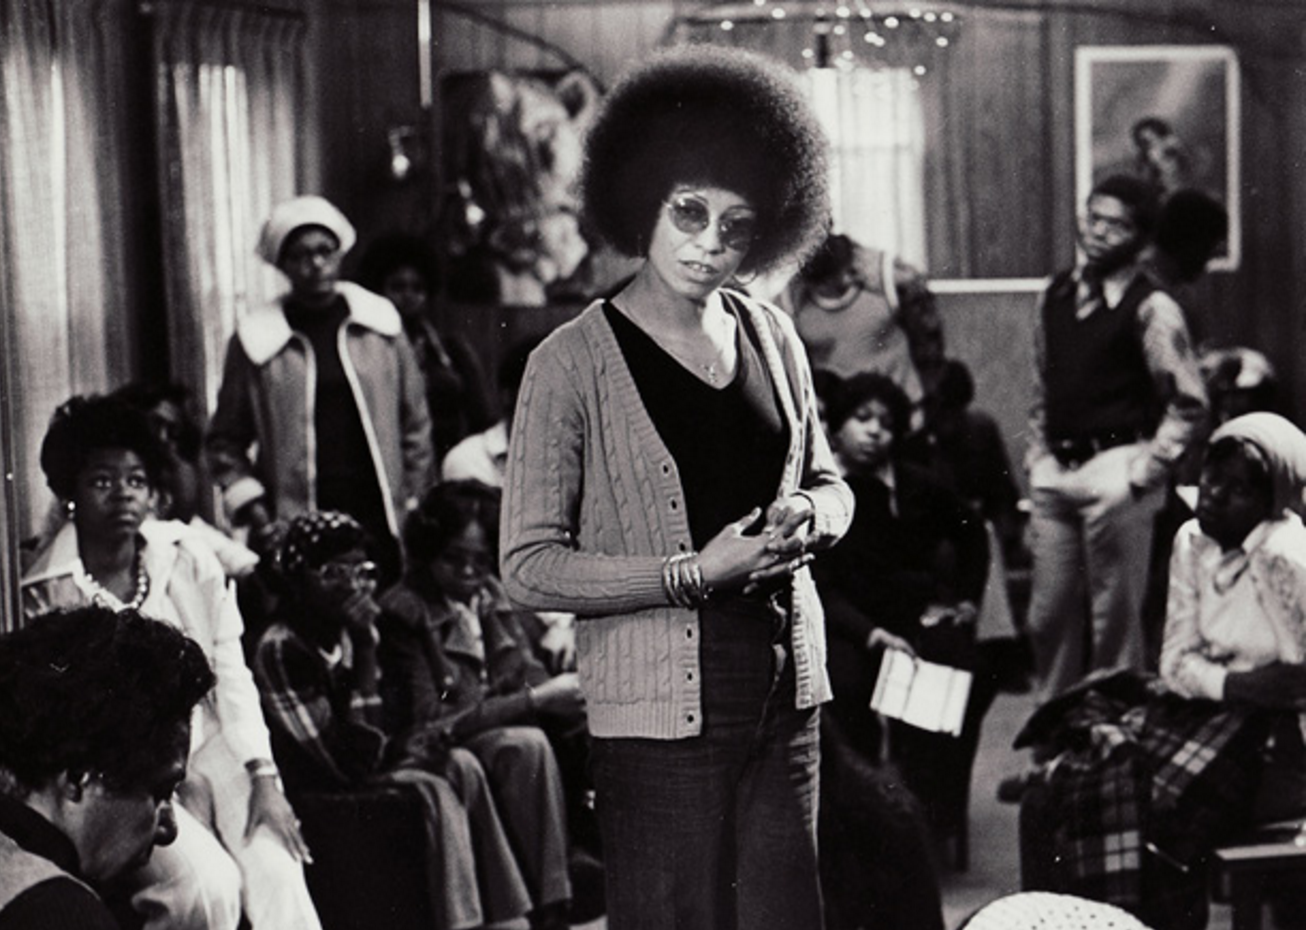 A picture of Angela Davis standing in a room full of people